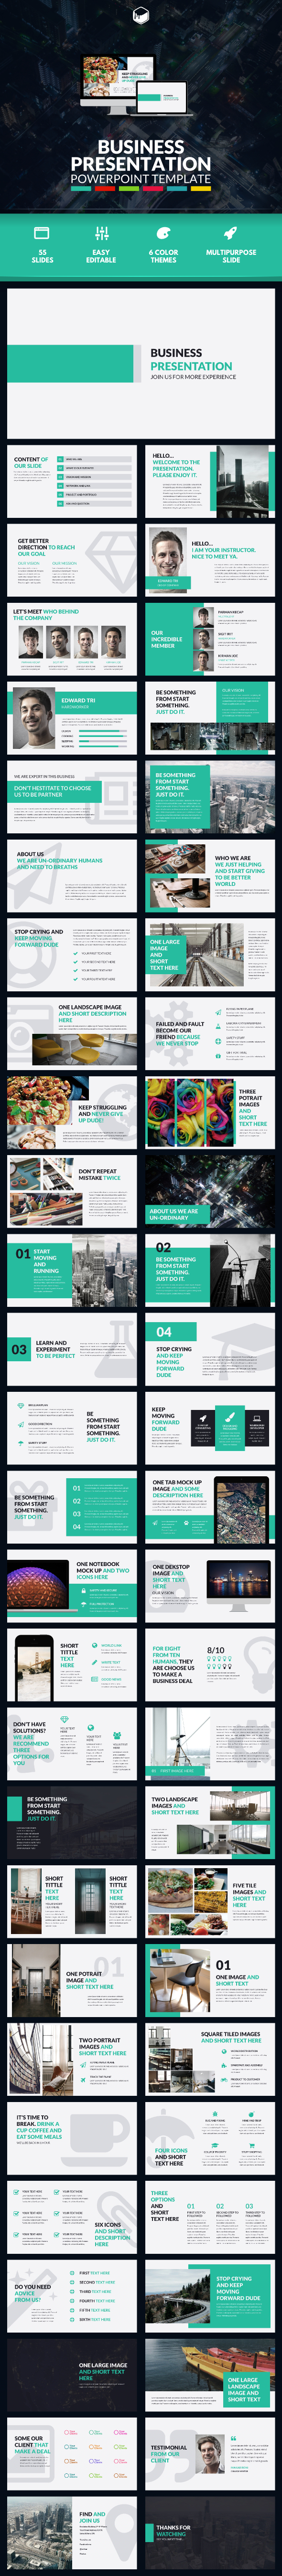 Business presentation 3 powerpoint template by descarteshouston business presentation 3 powerpoint template business powerpoint templates toneelgroepblik Image collections